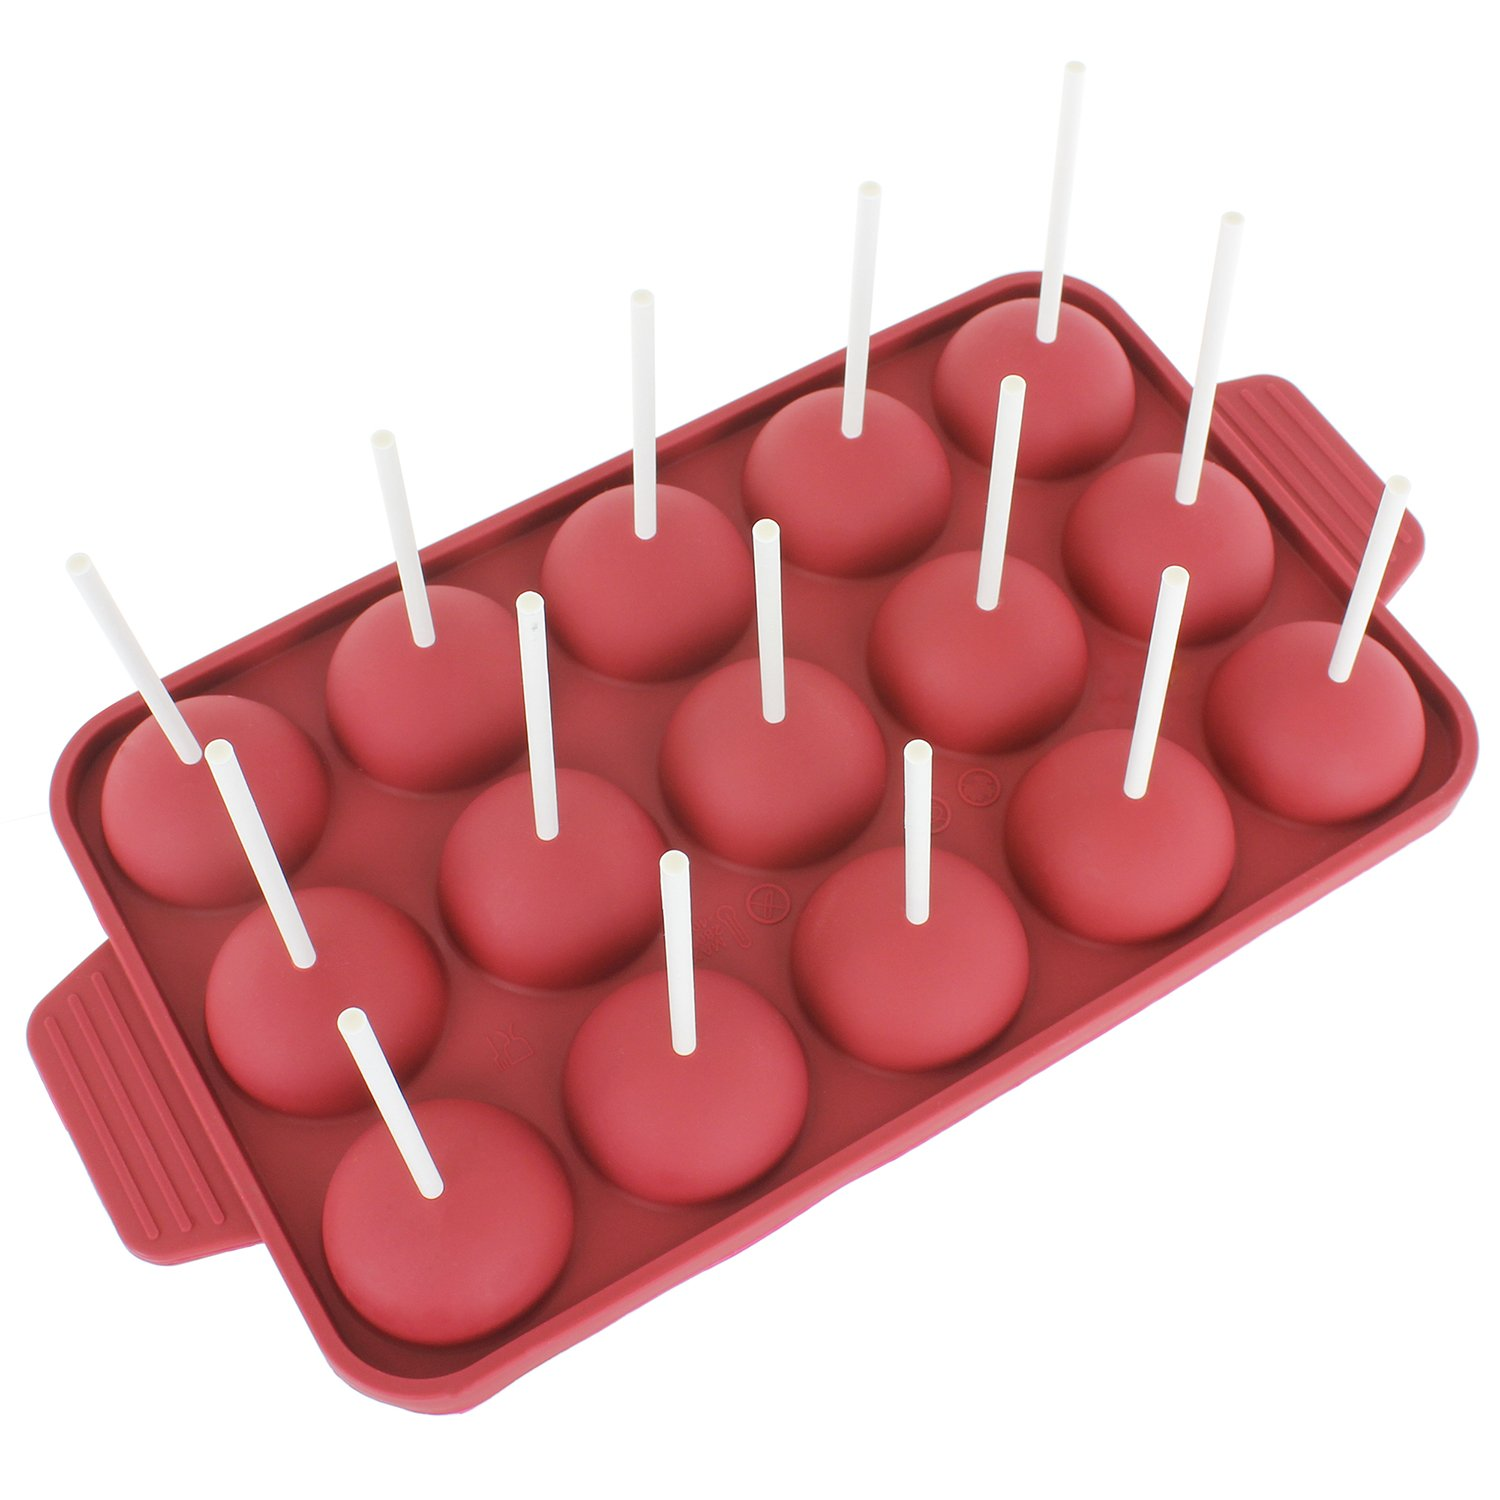 Freshware CB-121RD 15-Cavity Silicone Mold for Cake Pop, Hard Candy, Lollipop and Party Cupcake with 24-count Paper Sticks, Recipe Included